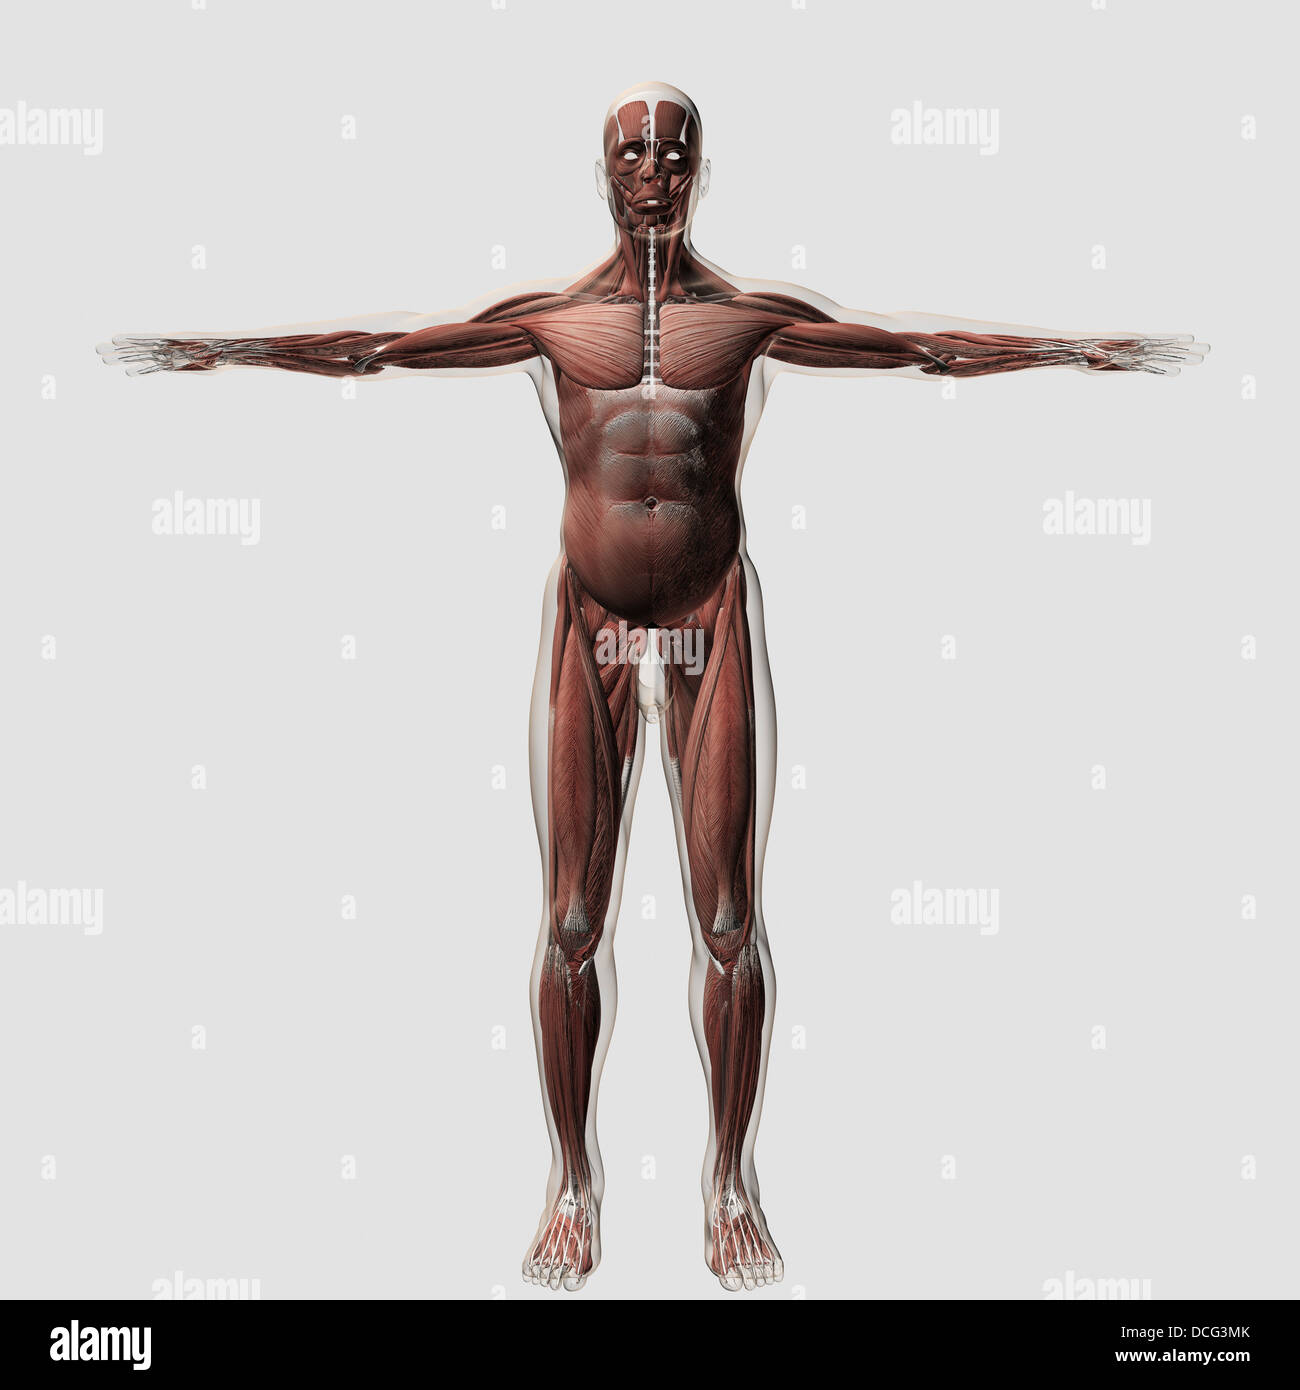 Anatomy Of Male Muscular System Front View Stock Photo 59361139